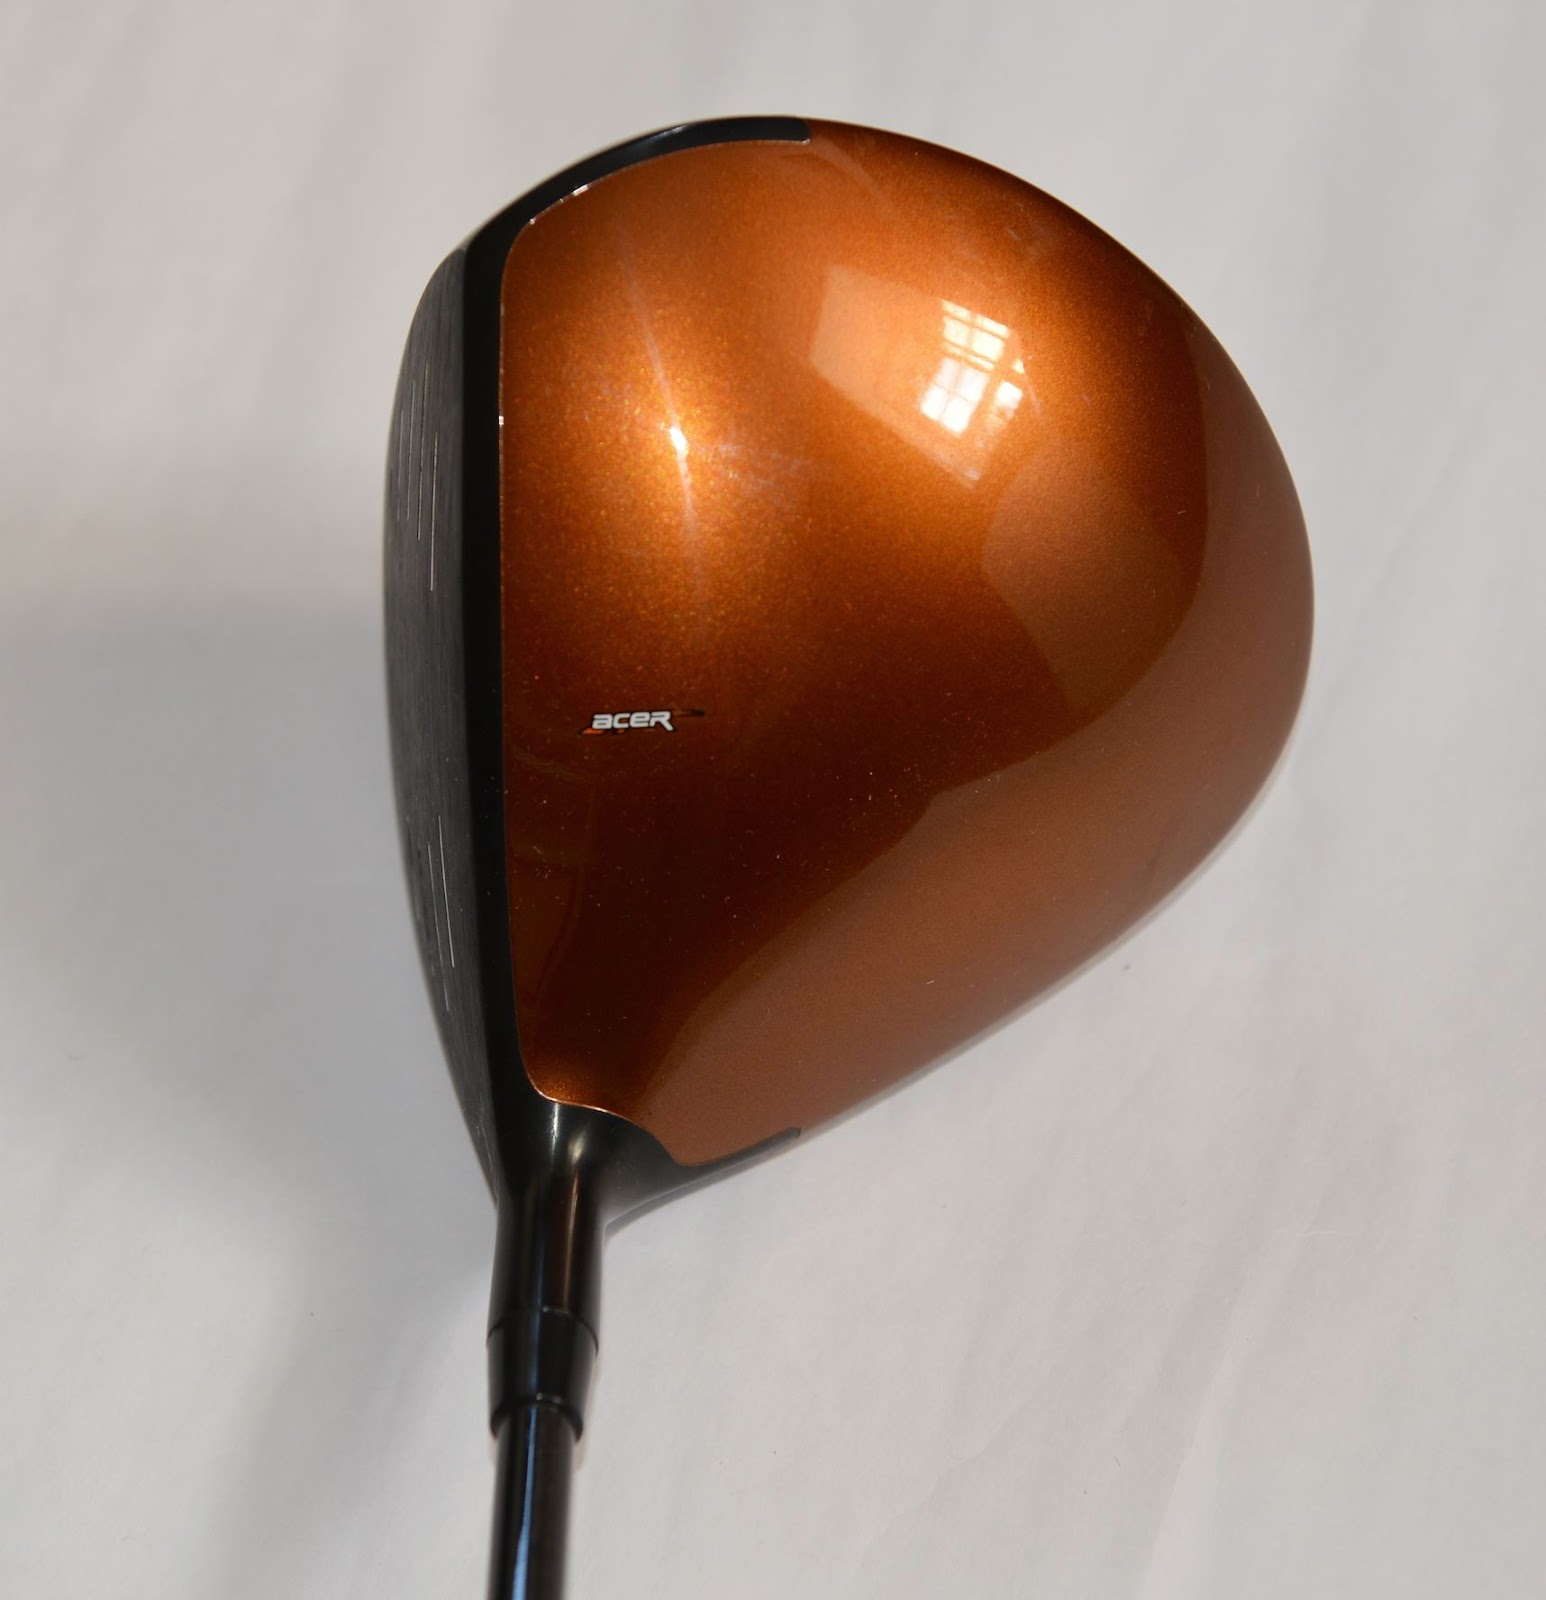 Best Golf Drivers 2014 >> Golf Driver Reviews 2014 2014 Mygolfspy Most Wanted 2019 03 07